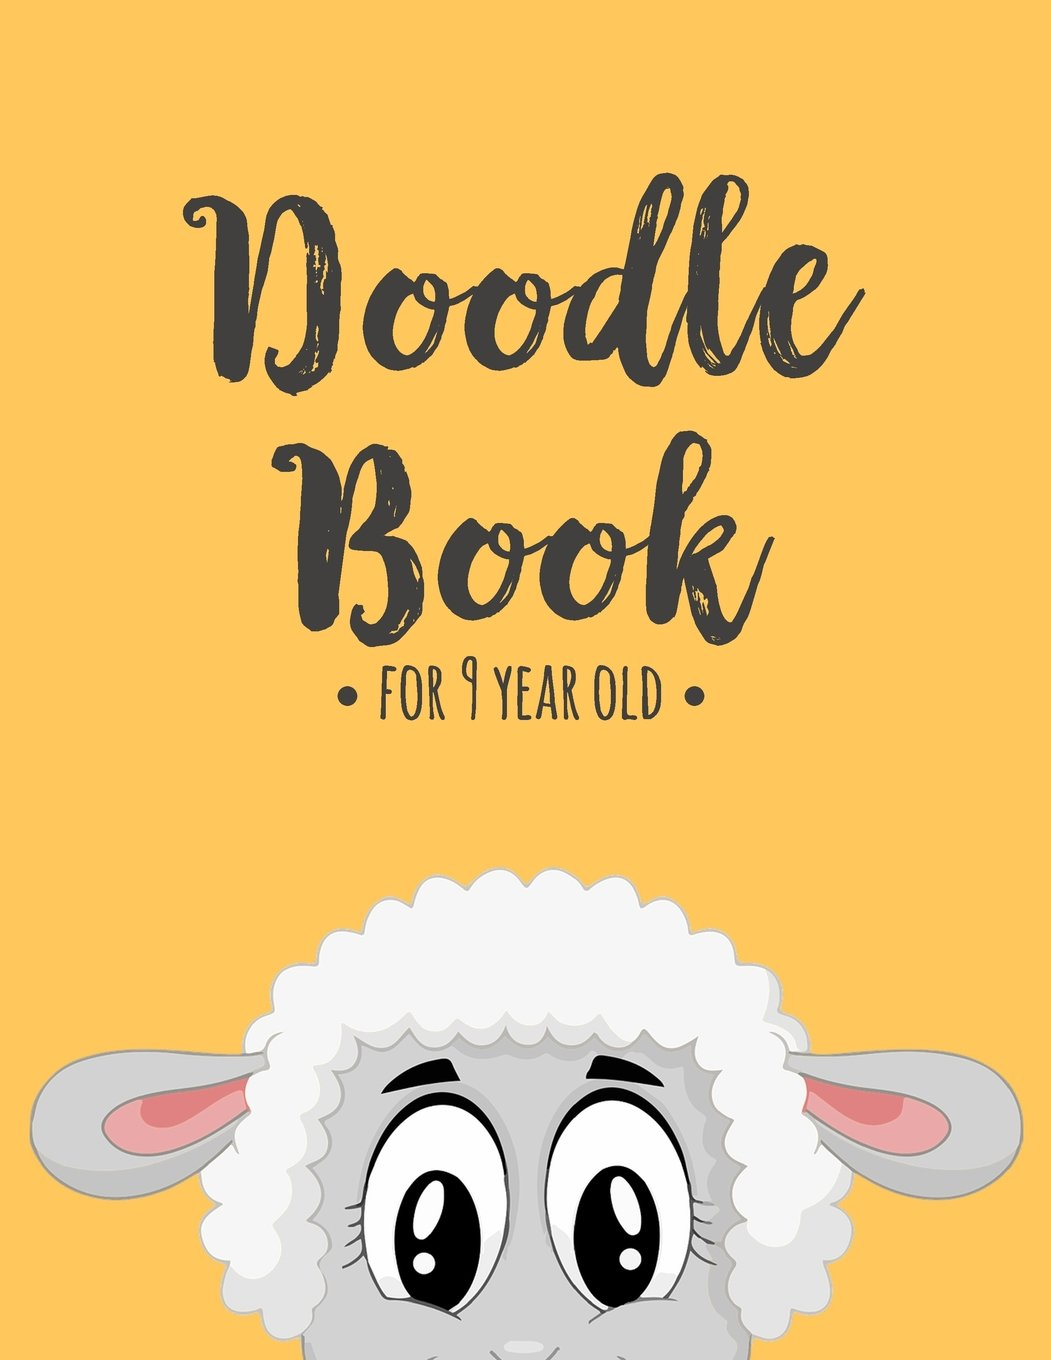 Doodle Book For 9 Year Old: 8.5 x 11, 120 Unlined Blank Pages For Unguided Doodling, Drawing, Sketching & Writing